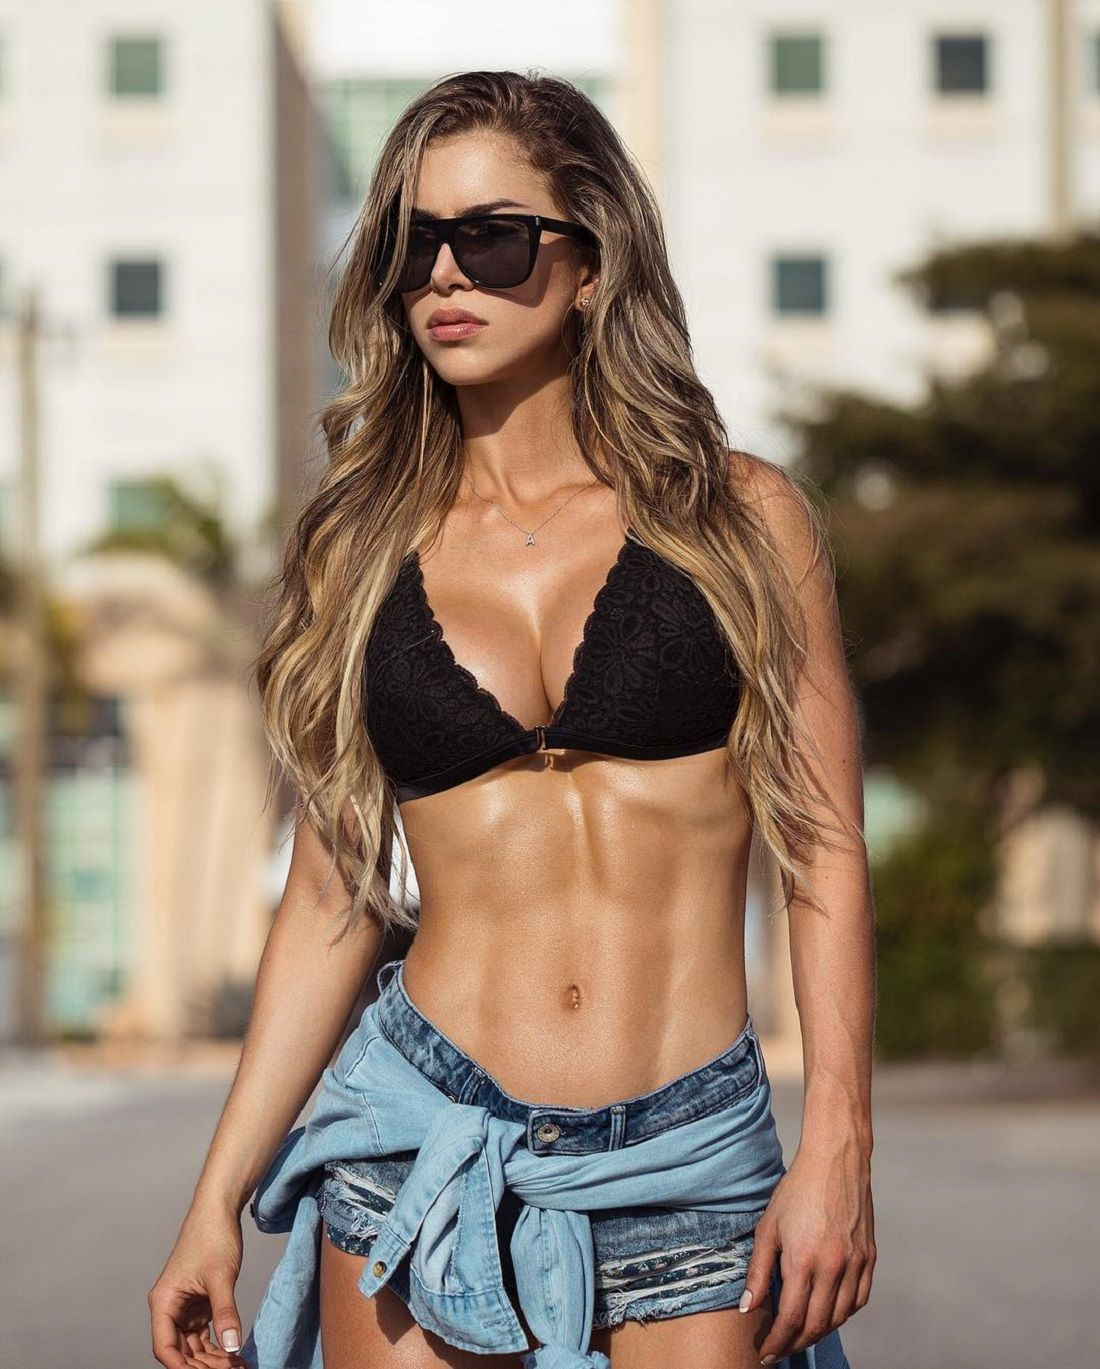 Photos Anllela Sagra nude photos 2019